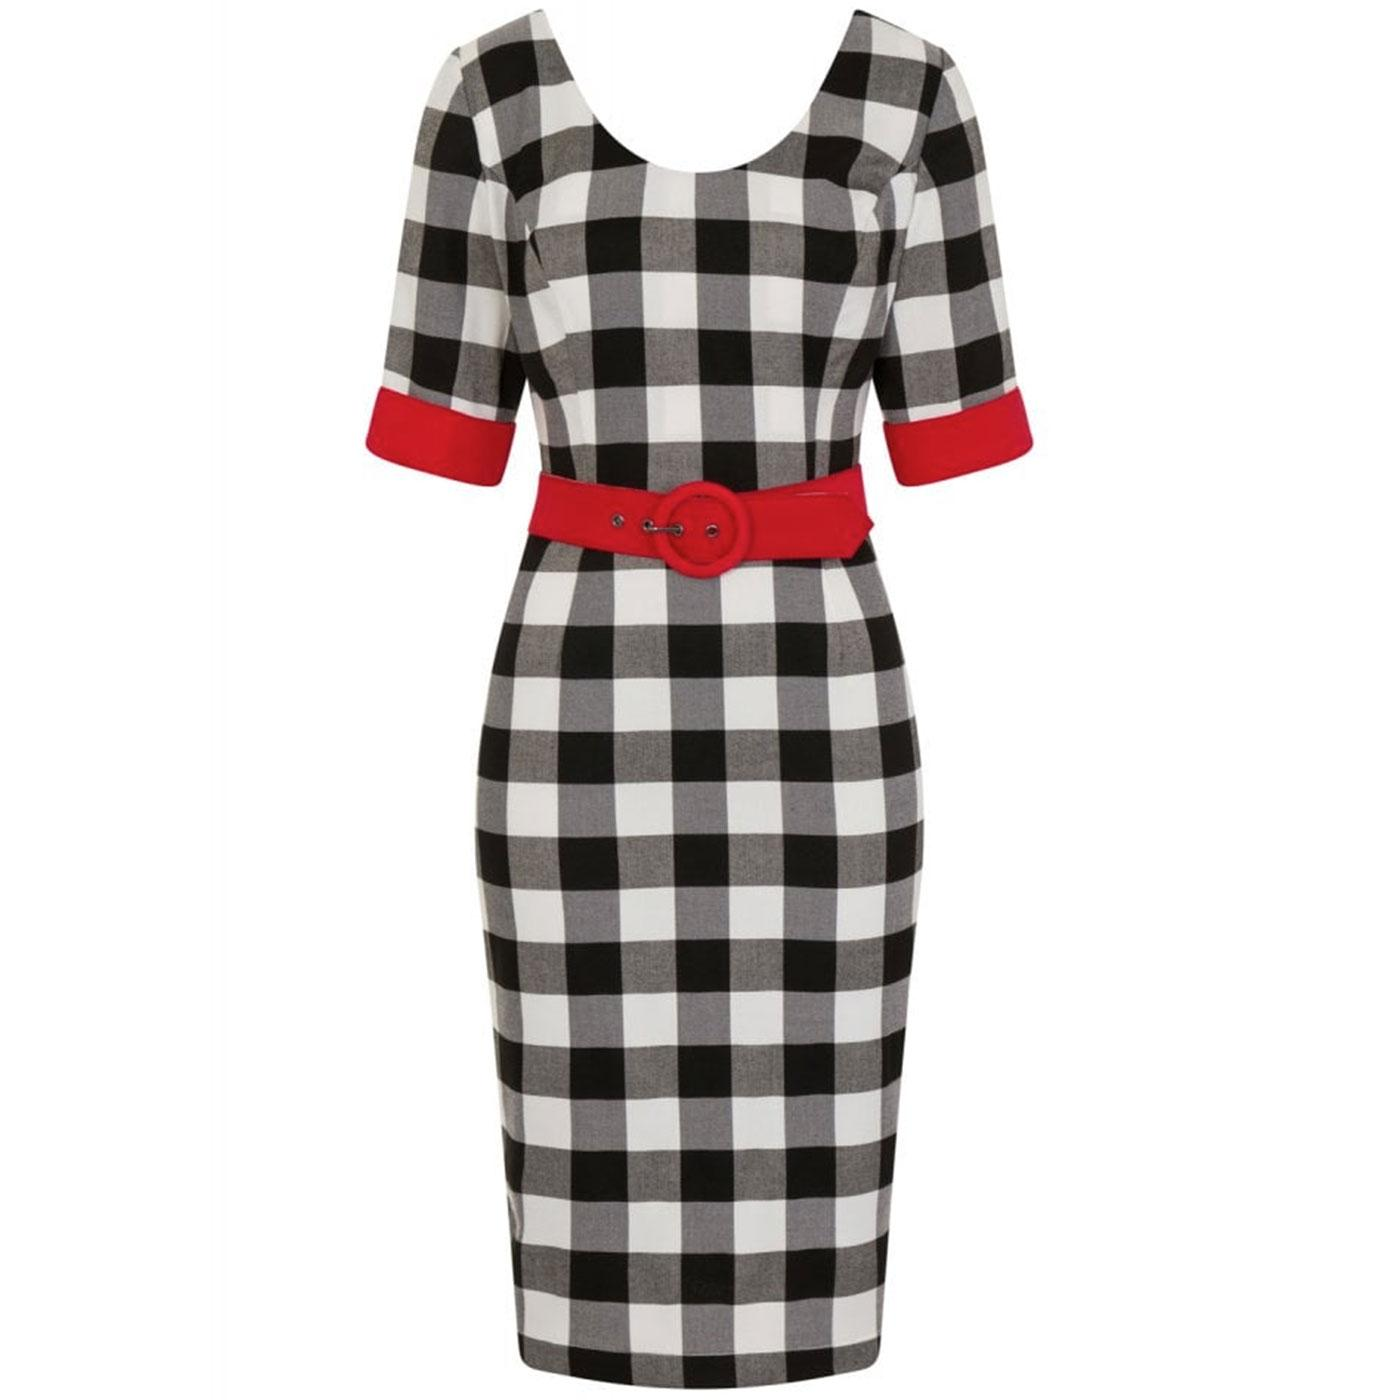 June COLLECTIF Vintage Gingham Pencil Dress B/W